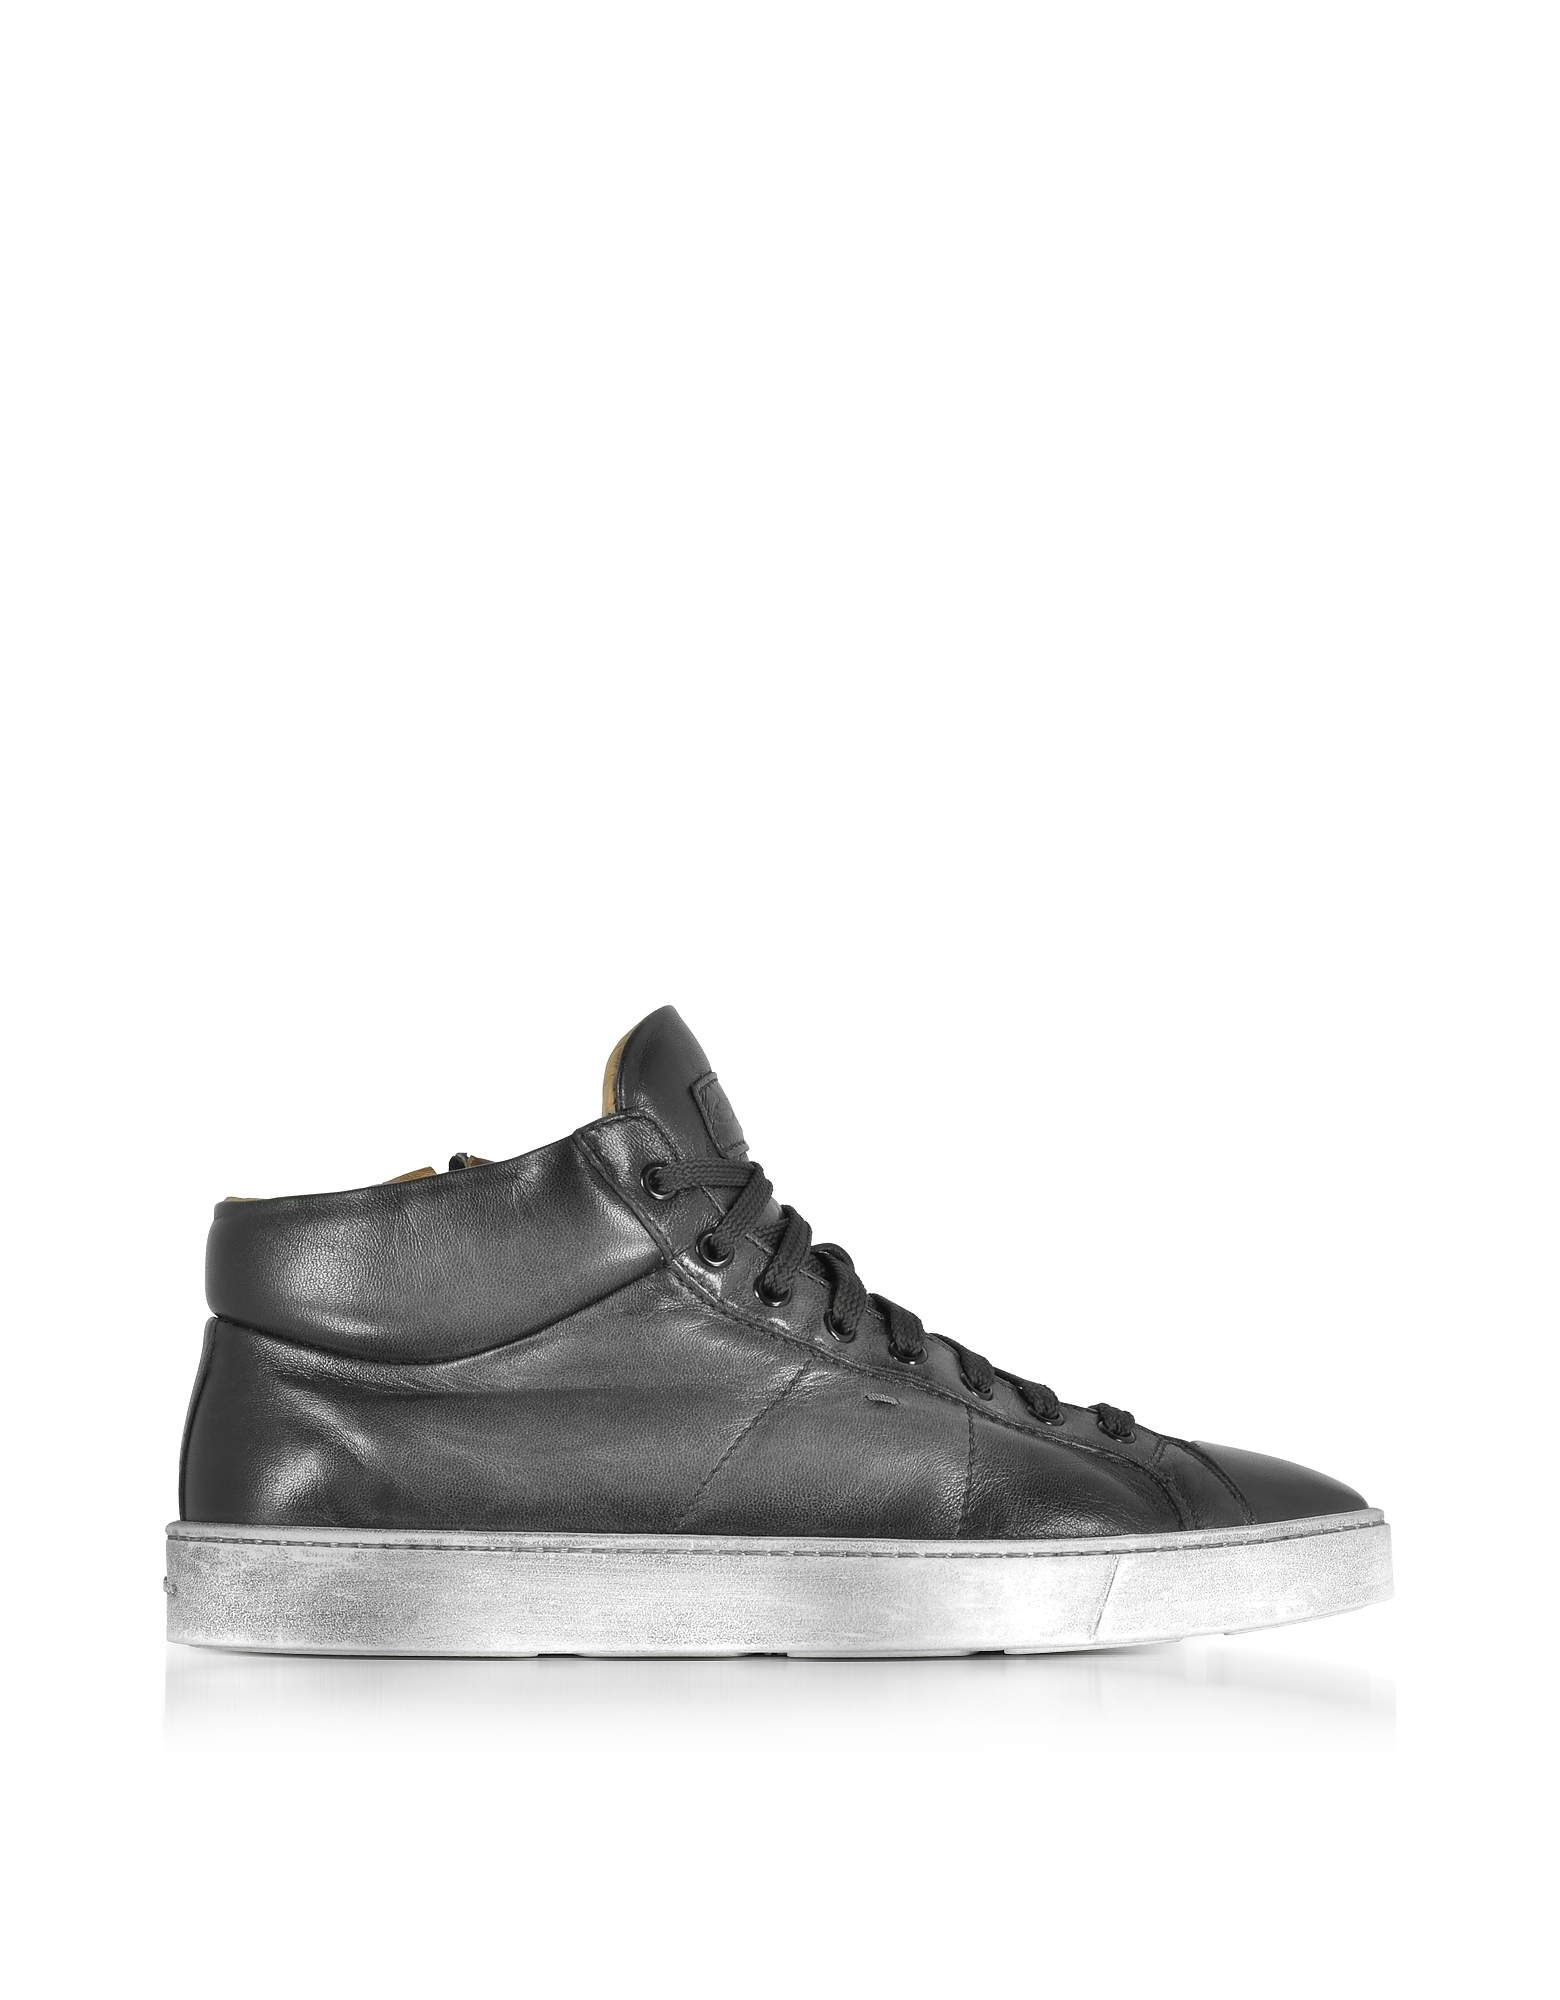 Dark Gray Washed Leather High Top Men's Sneakers